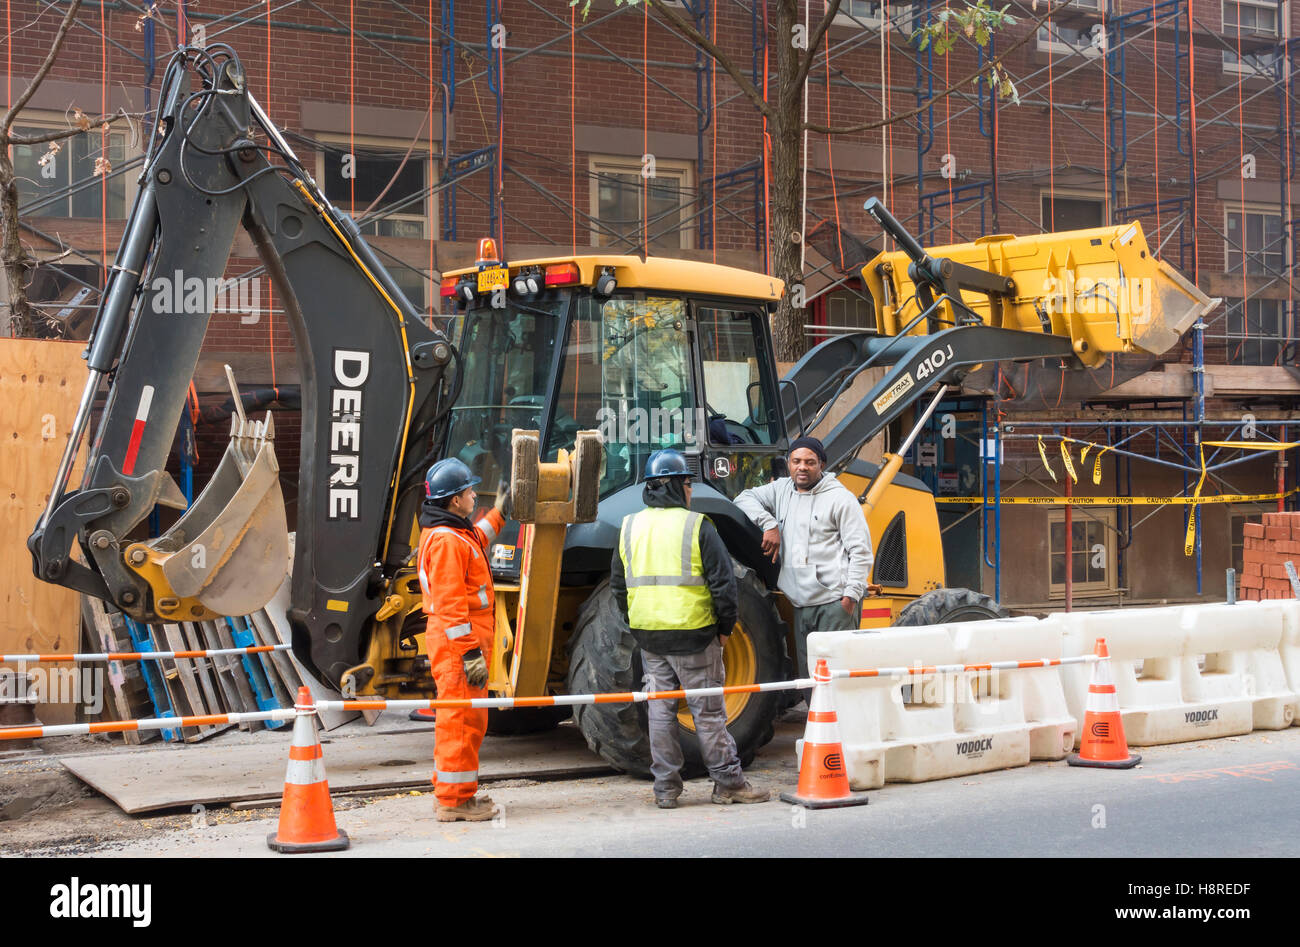 John Deere 410J with construction workers on a work site in New York City - Stock Image